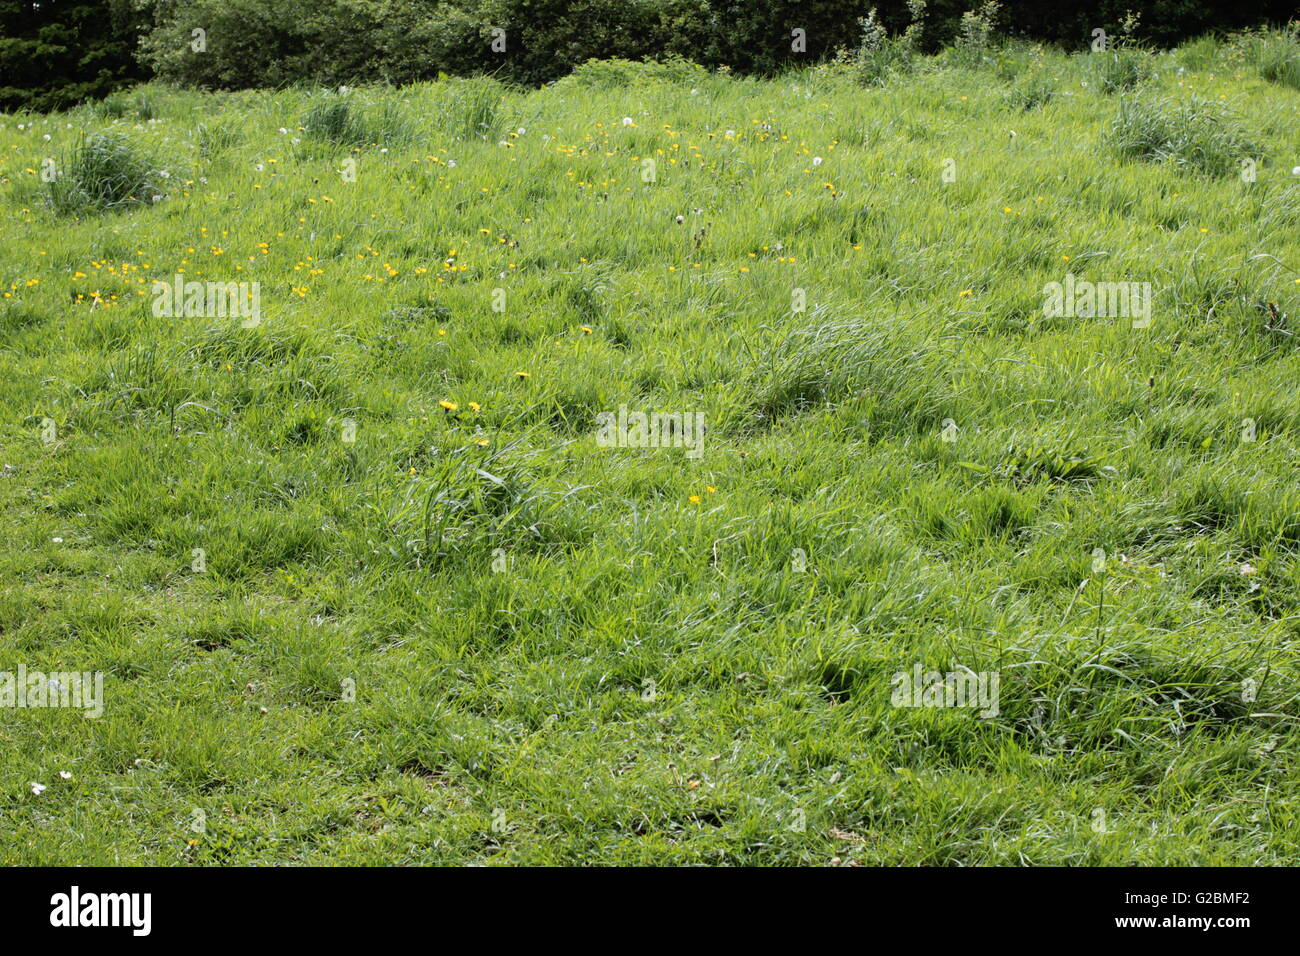 grass meadow land - Stock Image